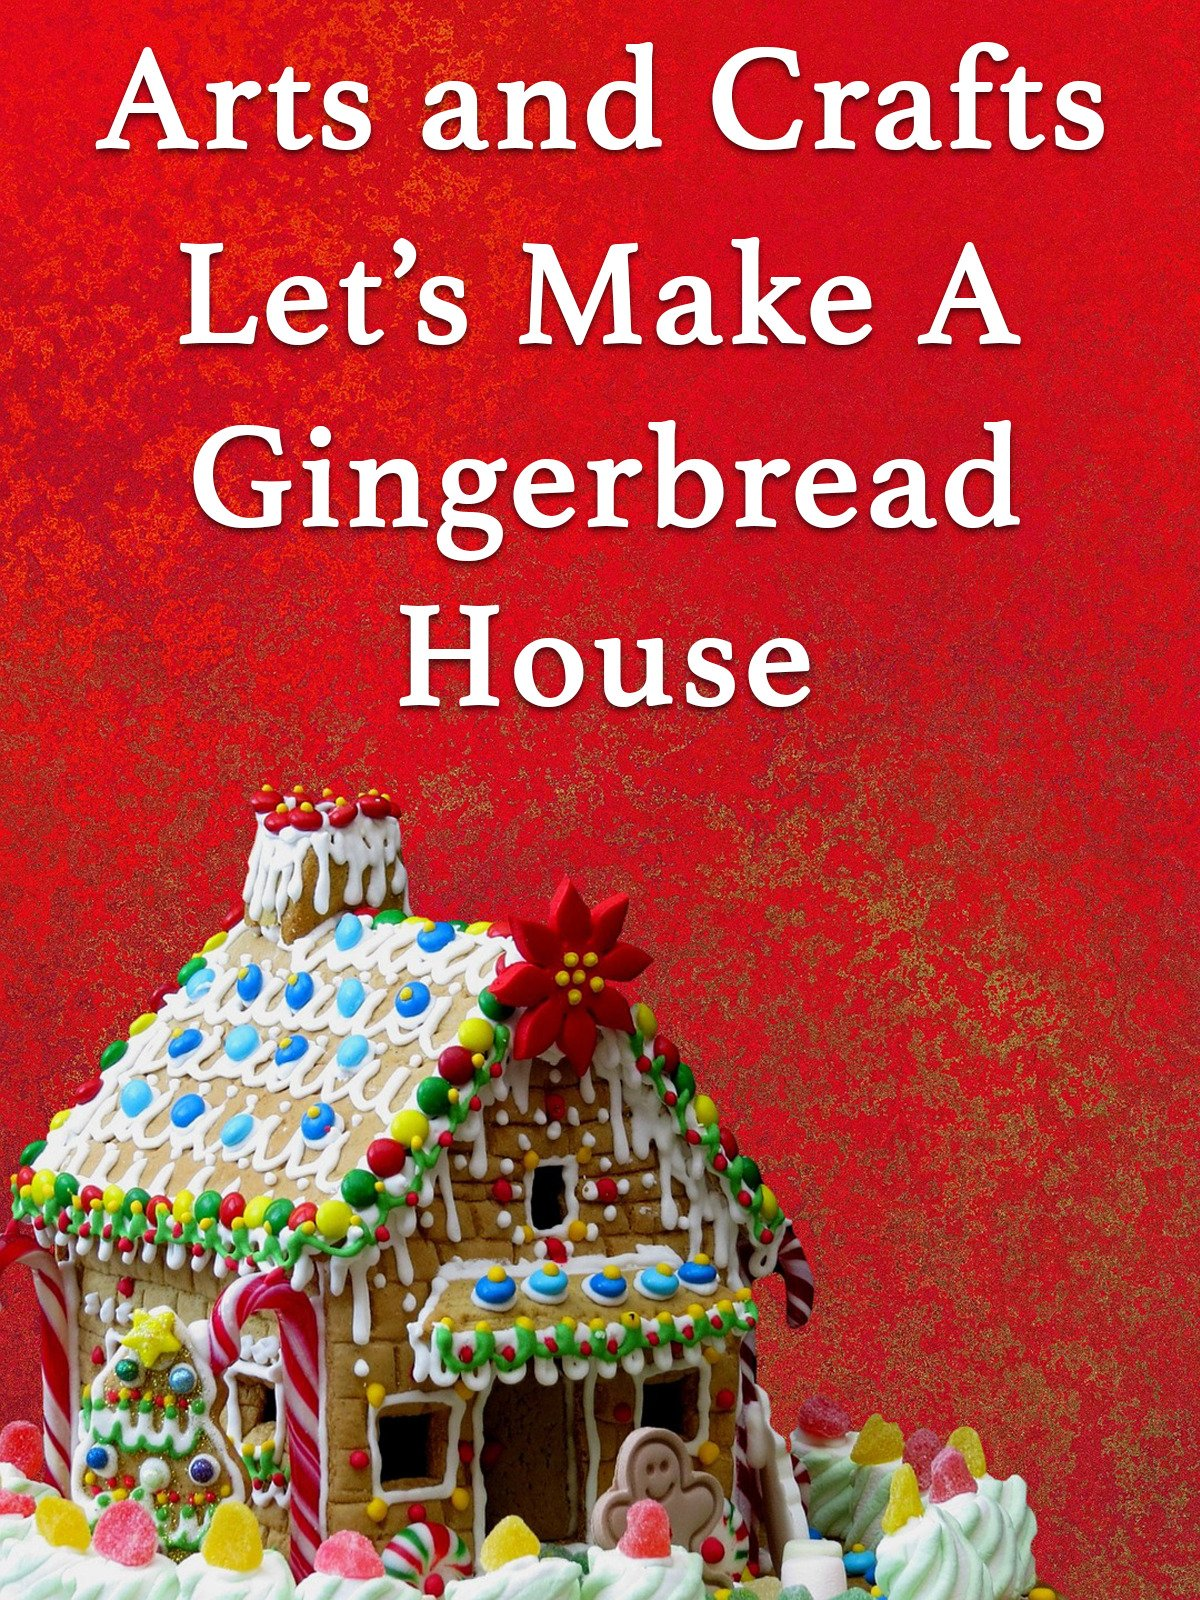 Arts and Crafts Let's Build A Gingerbread House